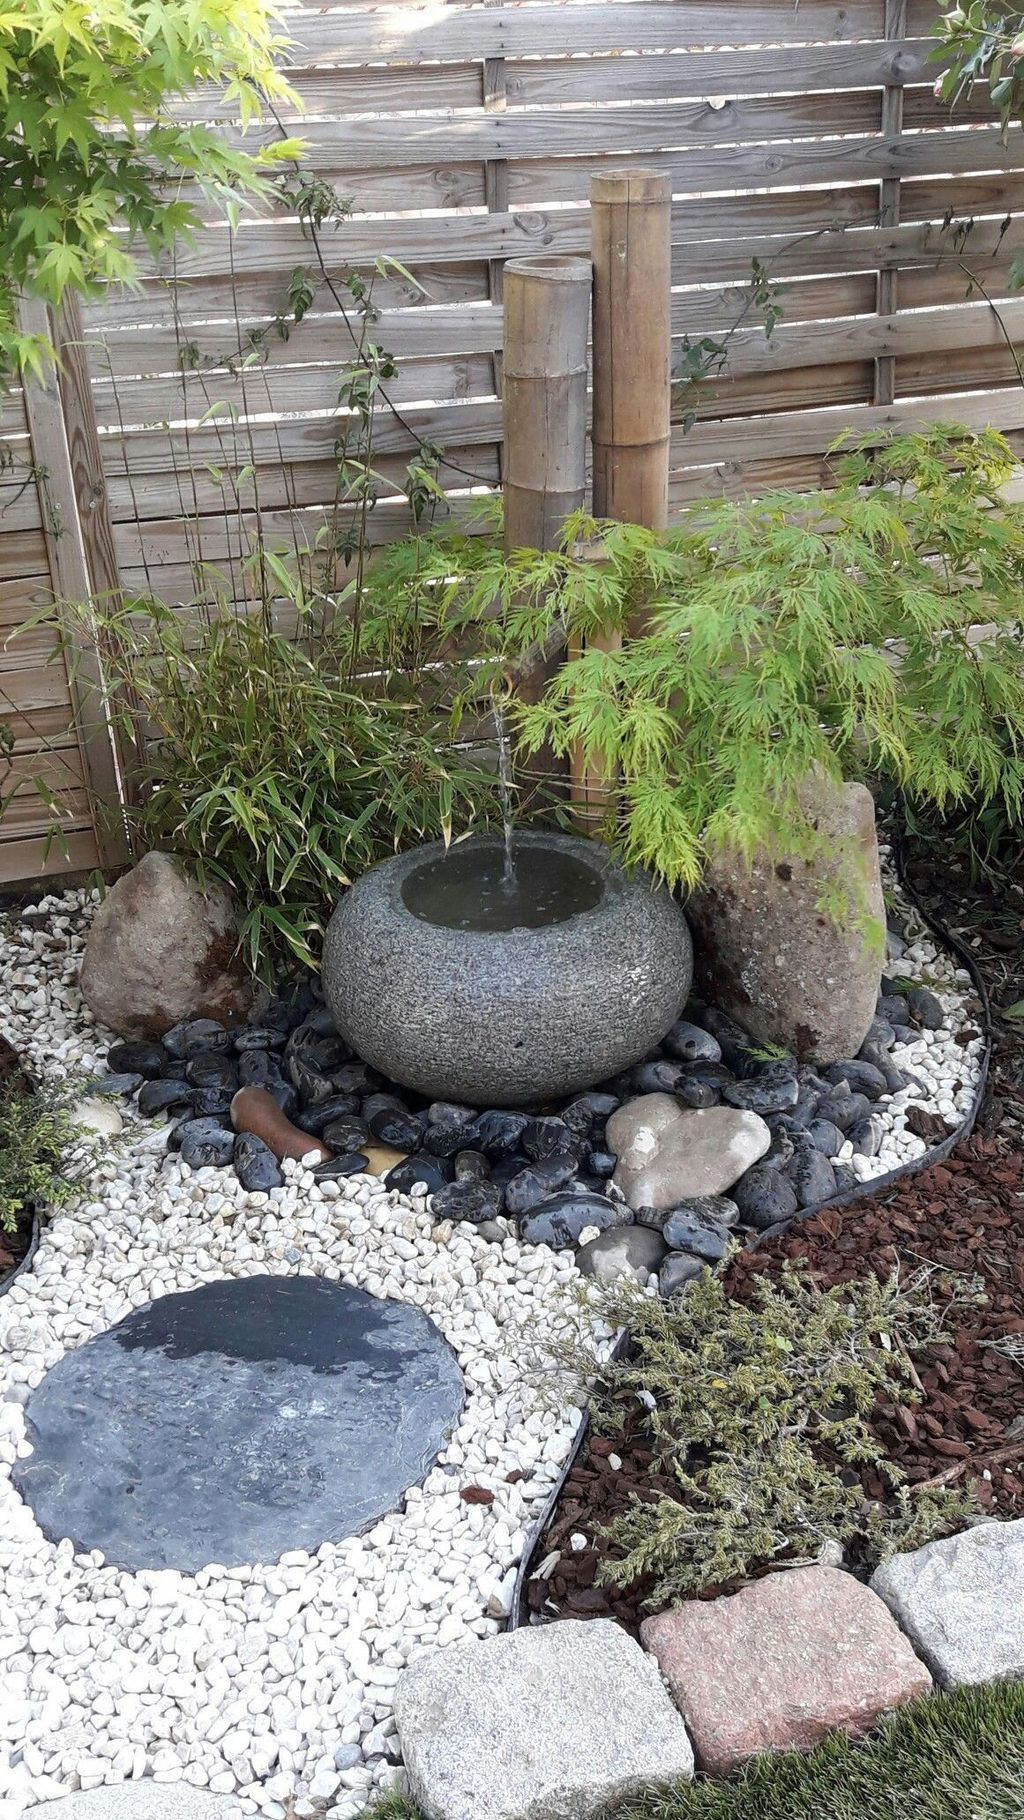 36 Awesome Japanese Garden Design Ideas That You Definitely Like Sweetyhomee Small Japanese Garden Japanese Garden Landscape Zen Garden Design